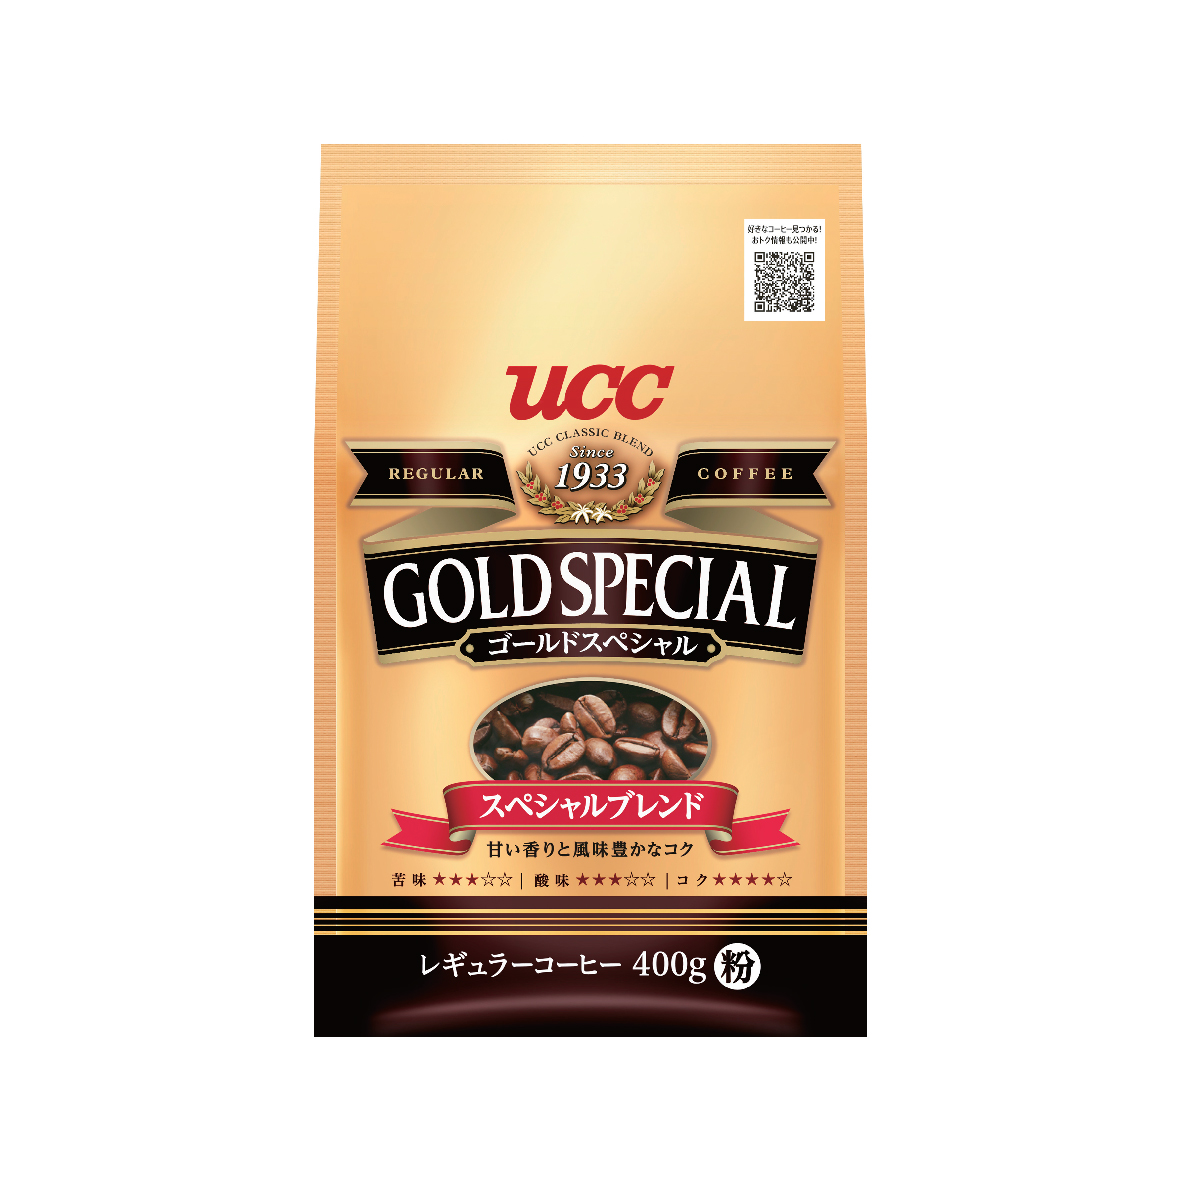 UCC Gold Special Special Blend Roasted Coffee